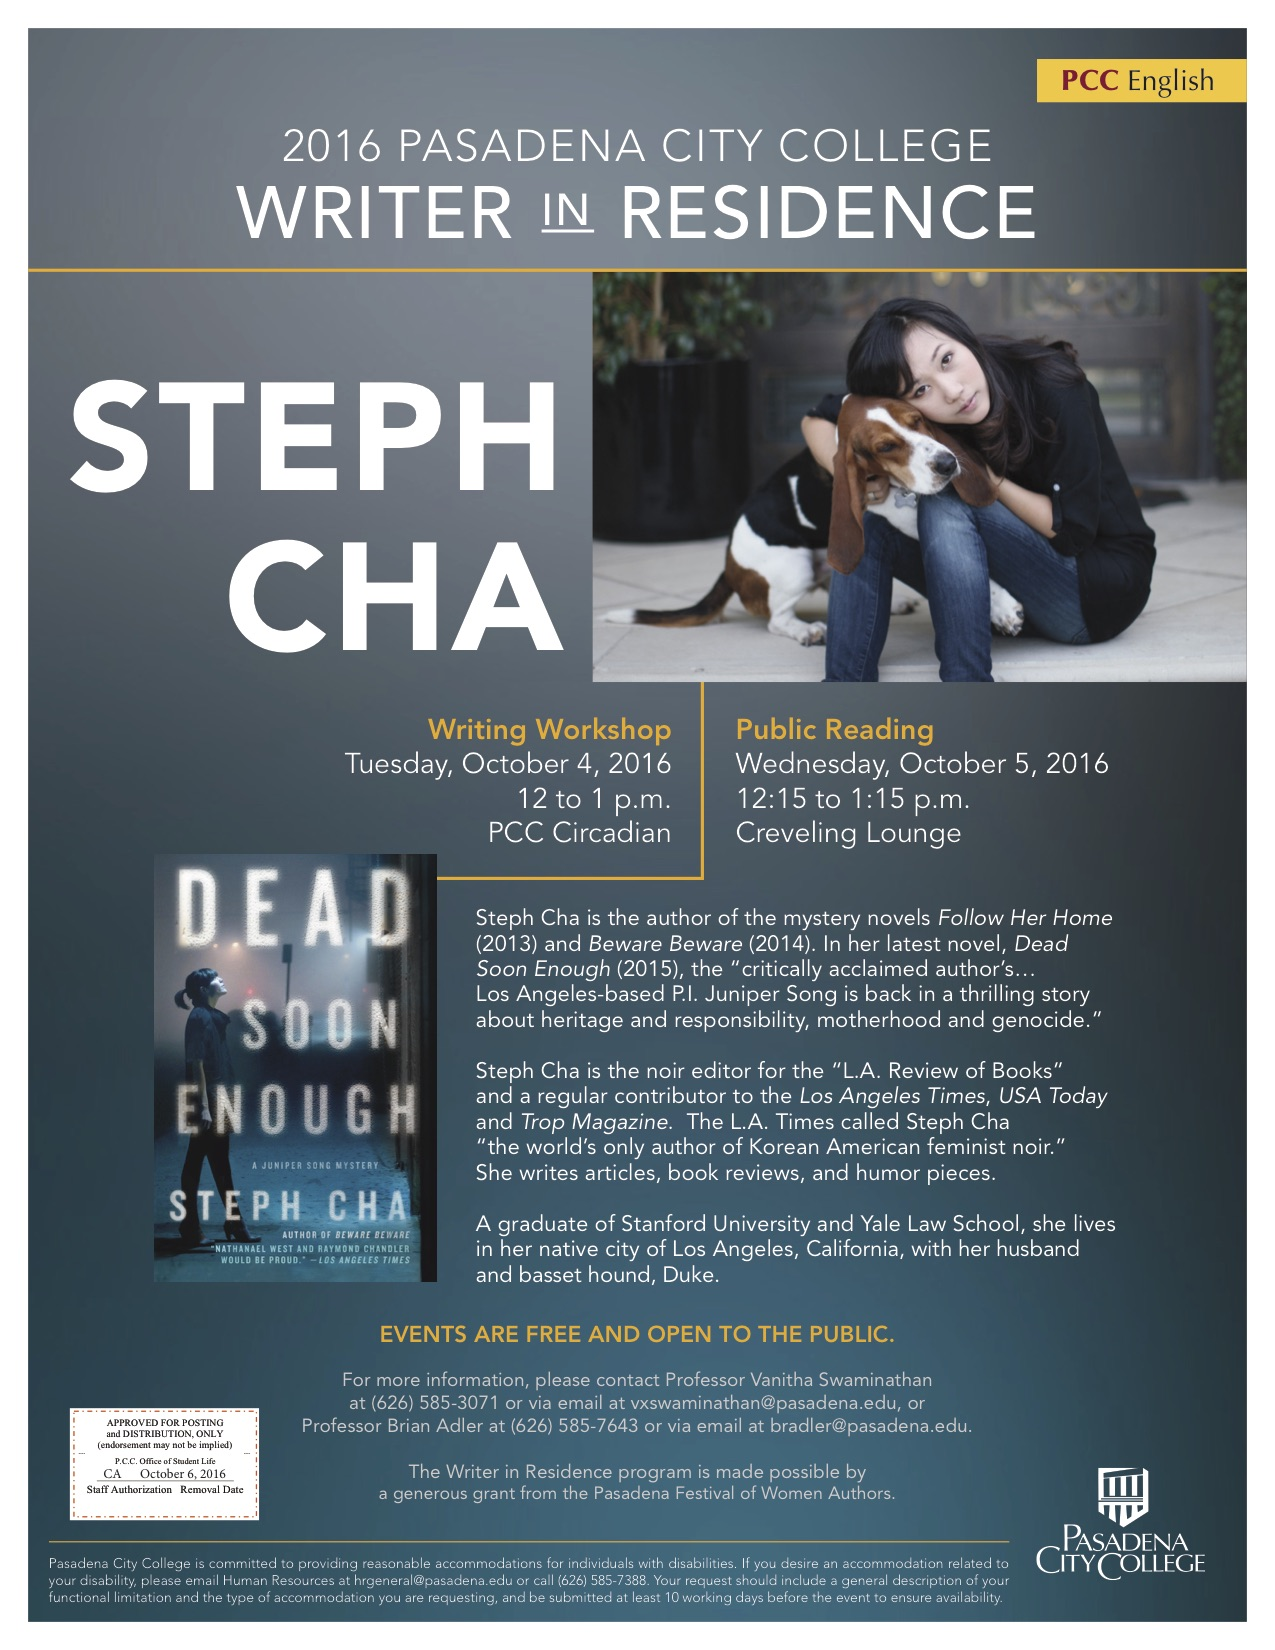 Steph Cha 2016 Writer-in-Residence poster announcing writing workshop on October 4 2016 at 12:00 in Circadian Room, and a public reading on October 5 2016 at 12:15 in Creveling Lounge.